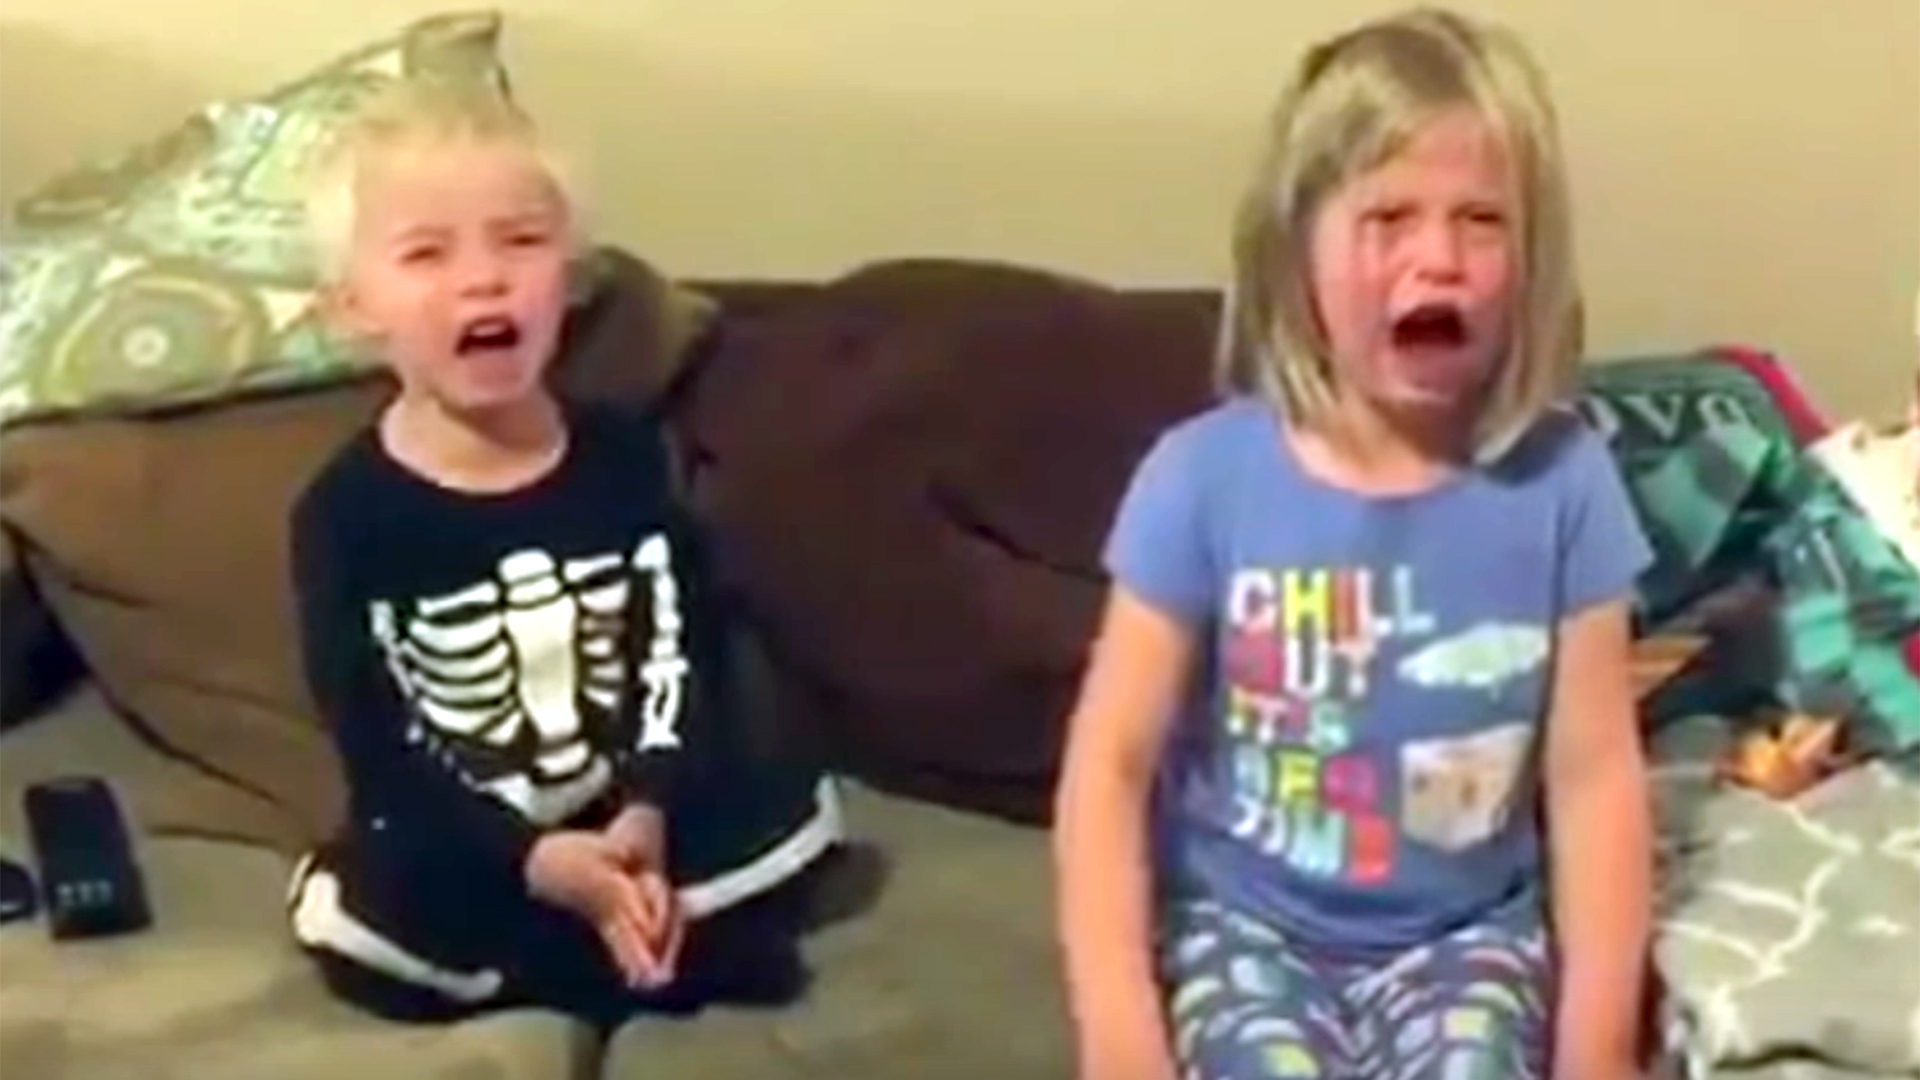 jimmy kimmel's halloween candy prank has kids crying, cursing and